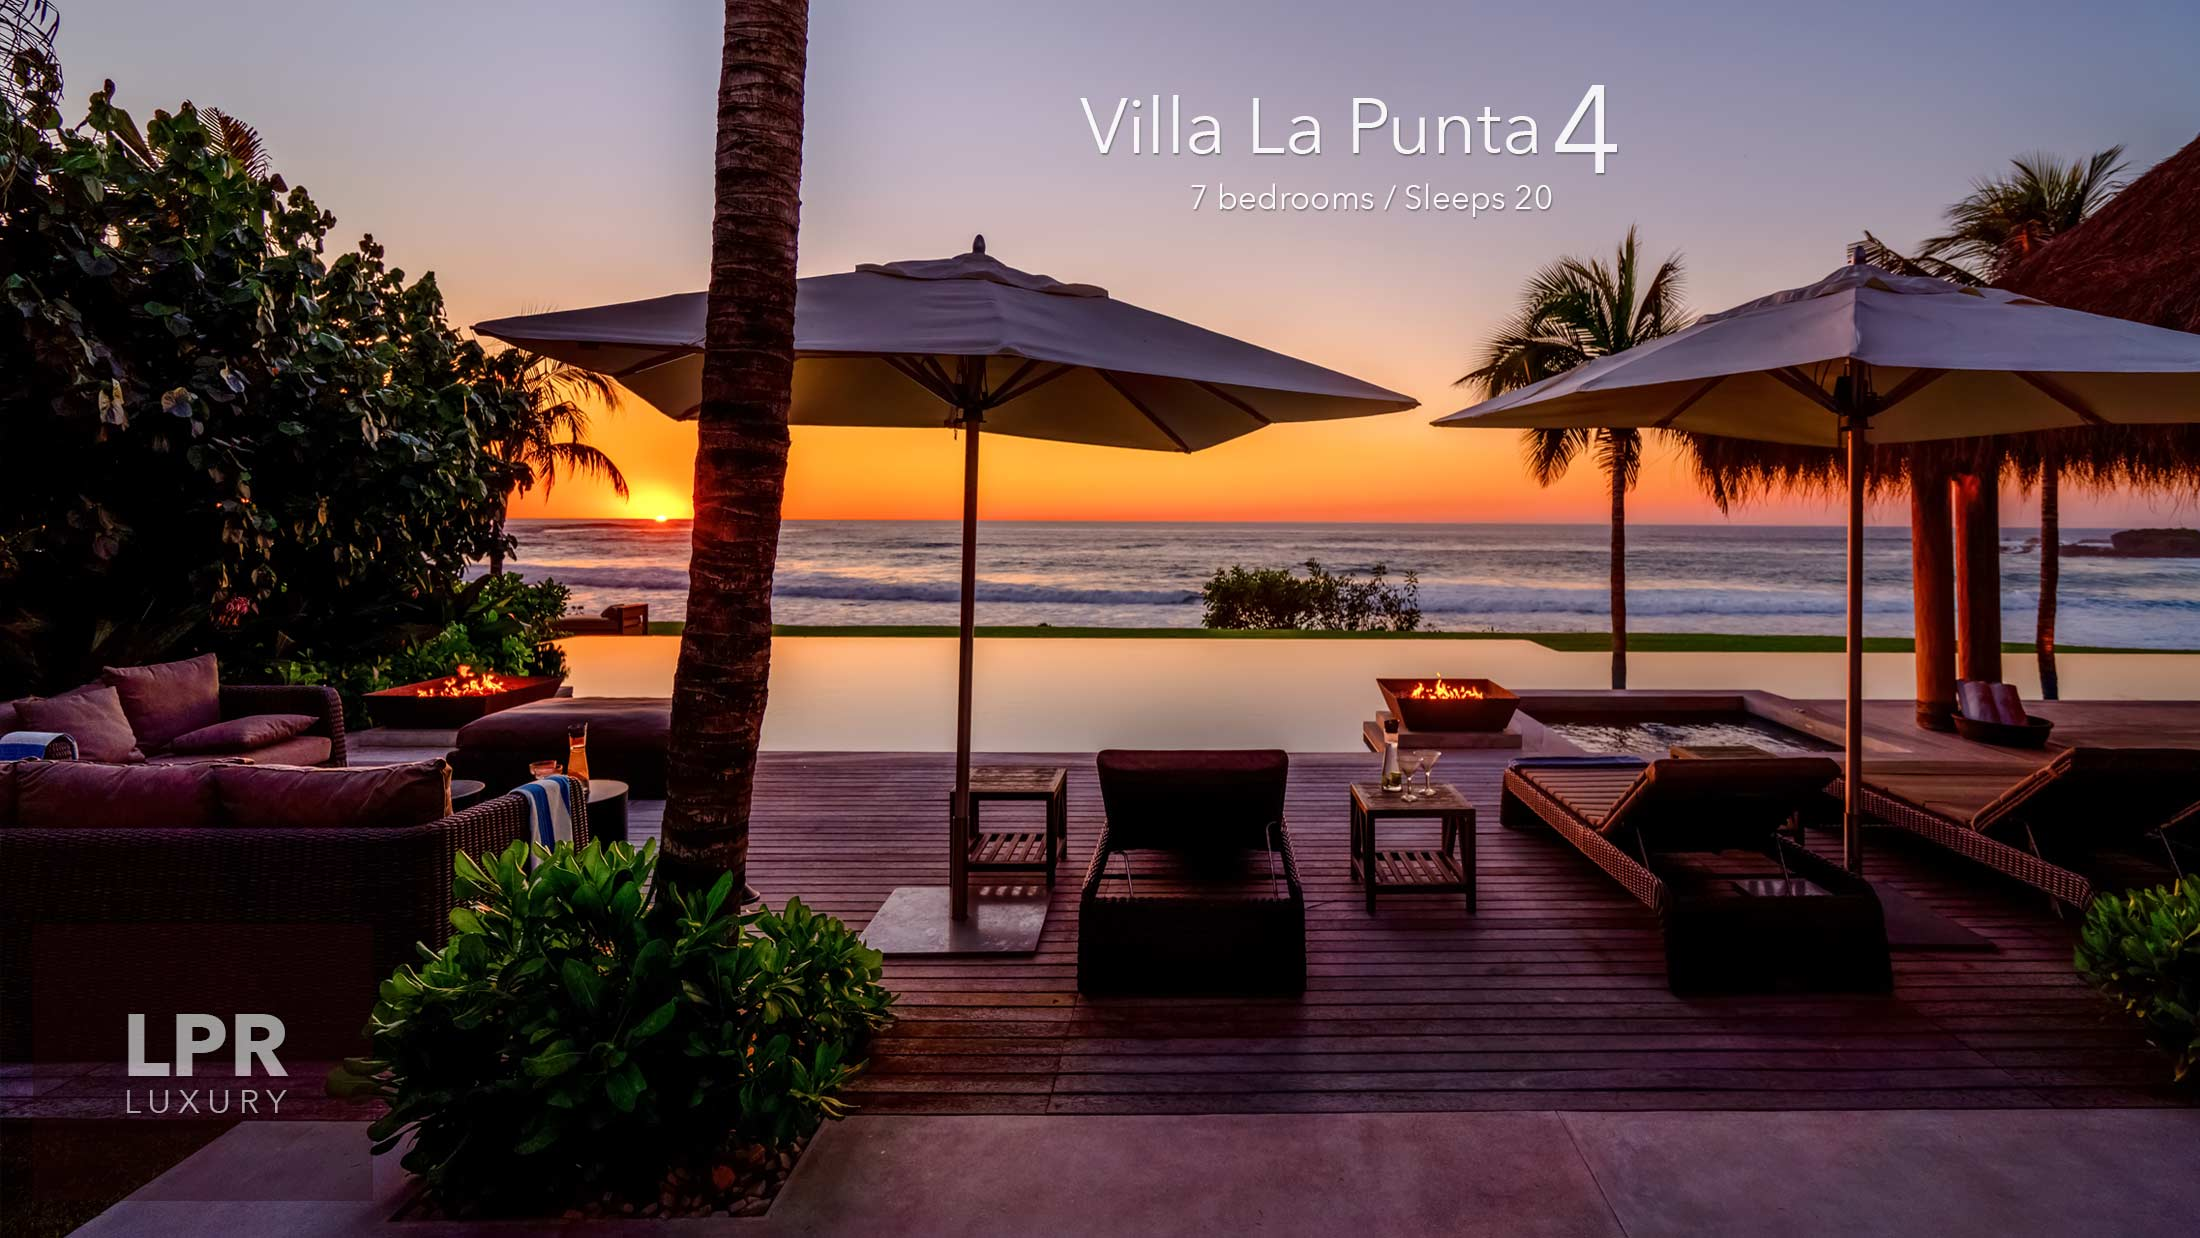 Villa La Punta 4 - Luxury Punta Mita Real Estate and Vacation Rentals Villas